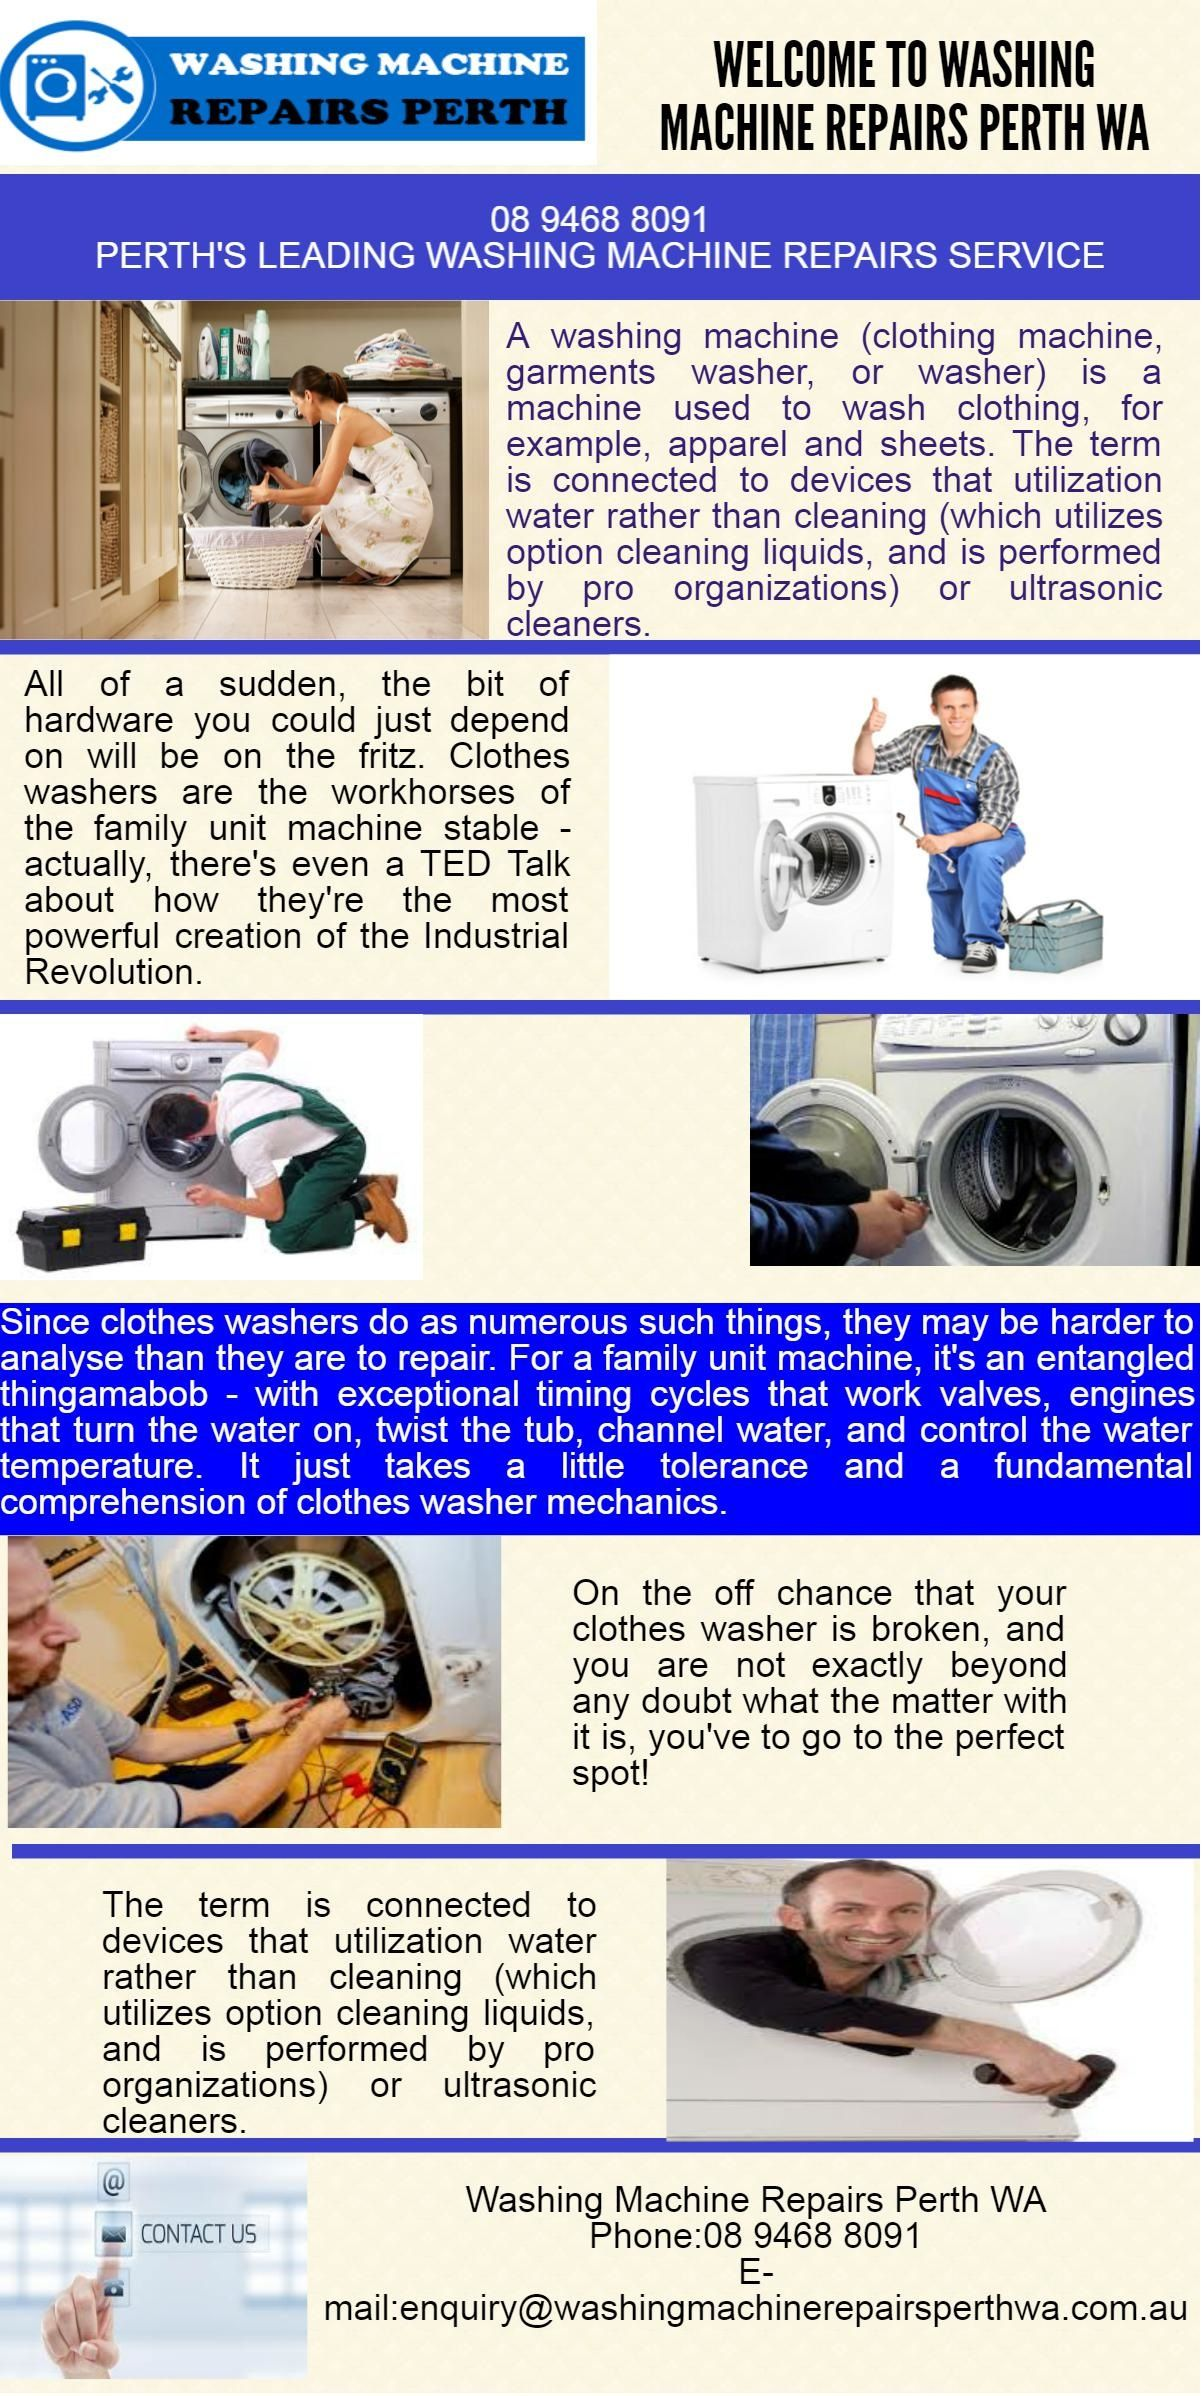 we provide all types of washing machine repairs in wa at very cheap